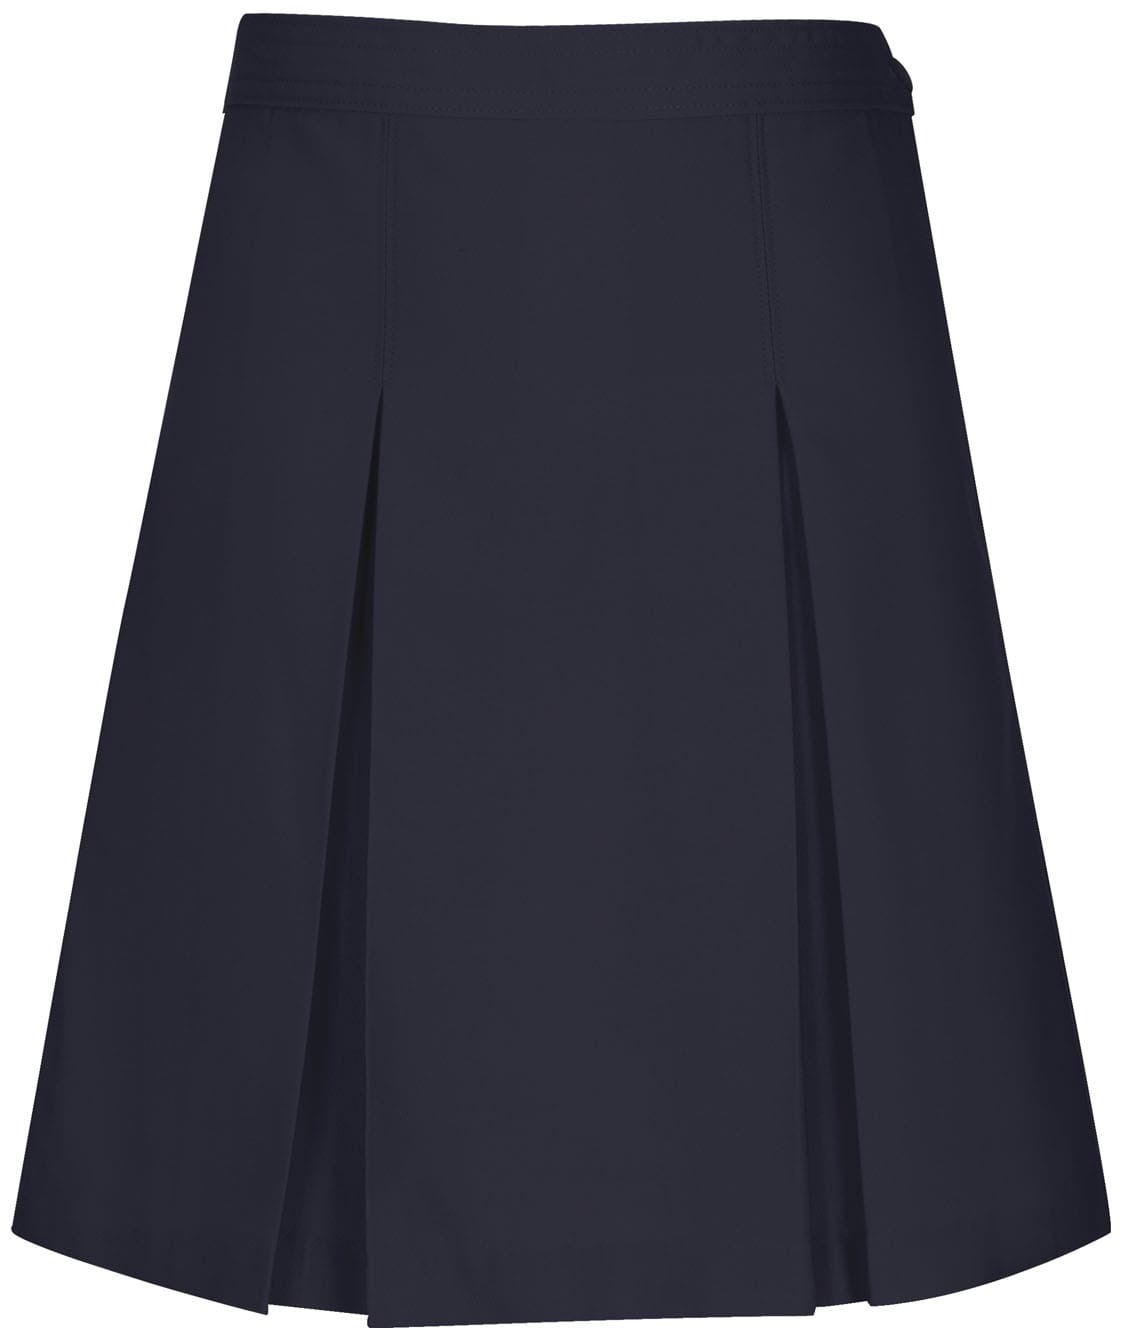 Kick Pleat Skirt - Inwood Middle - Navy